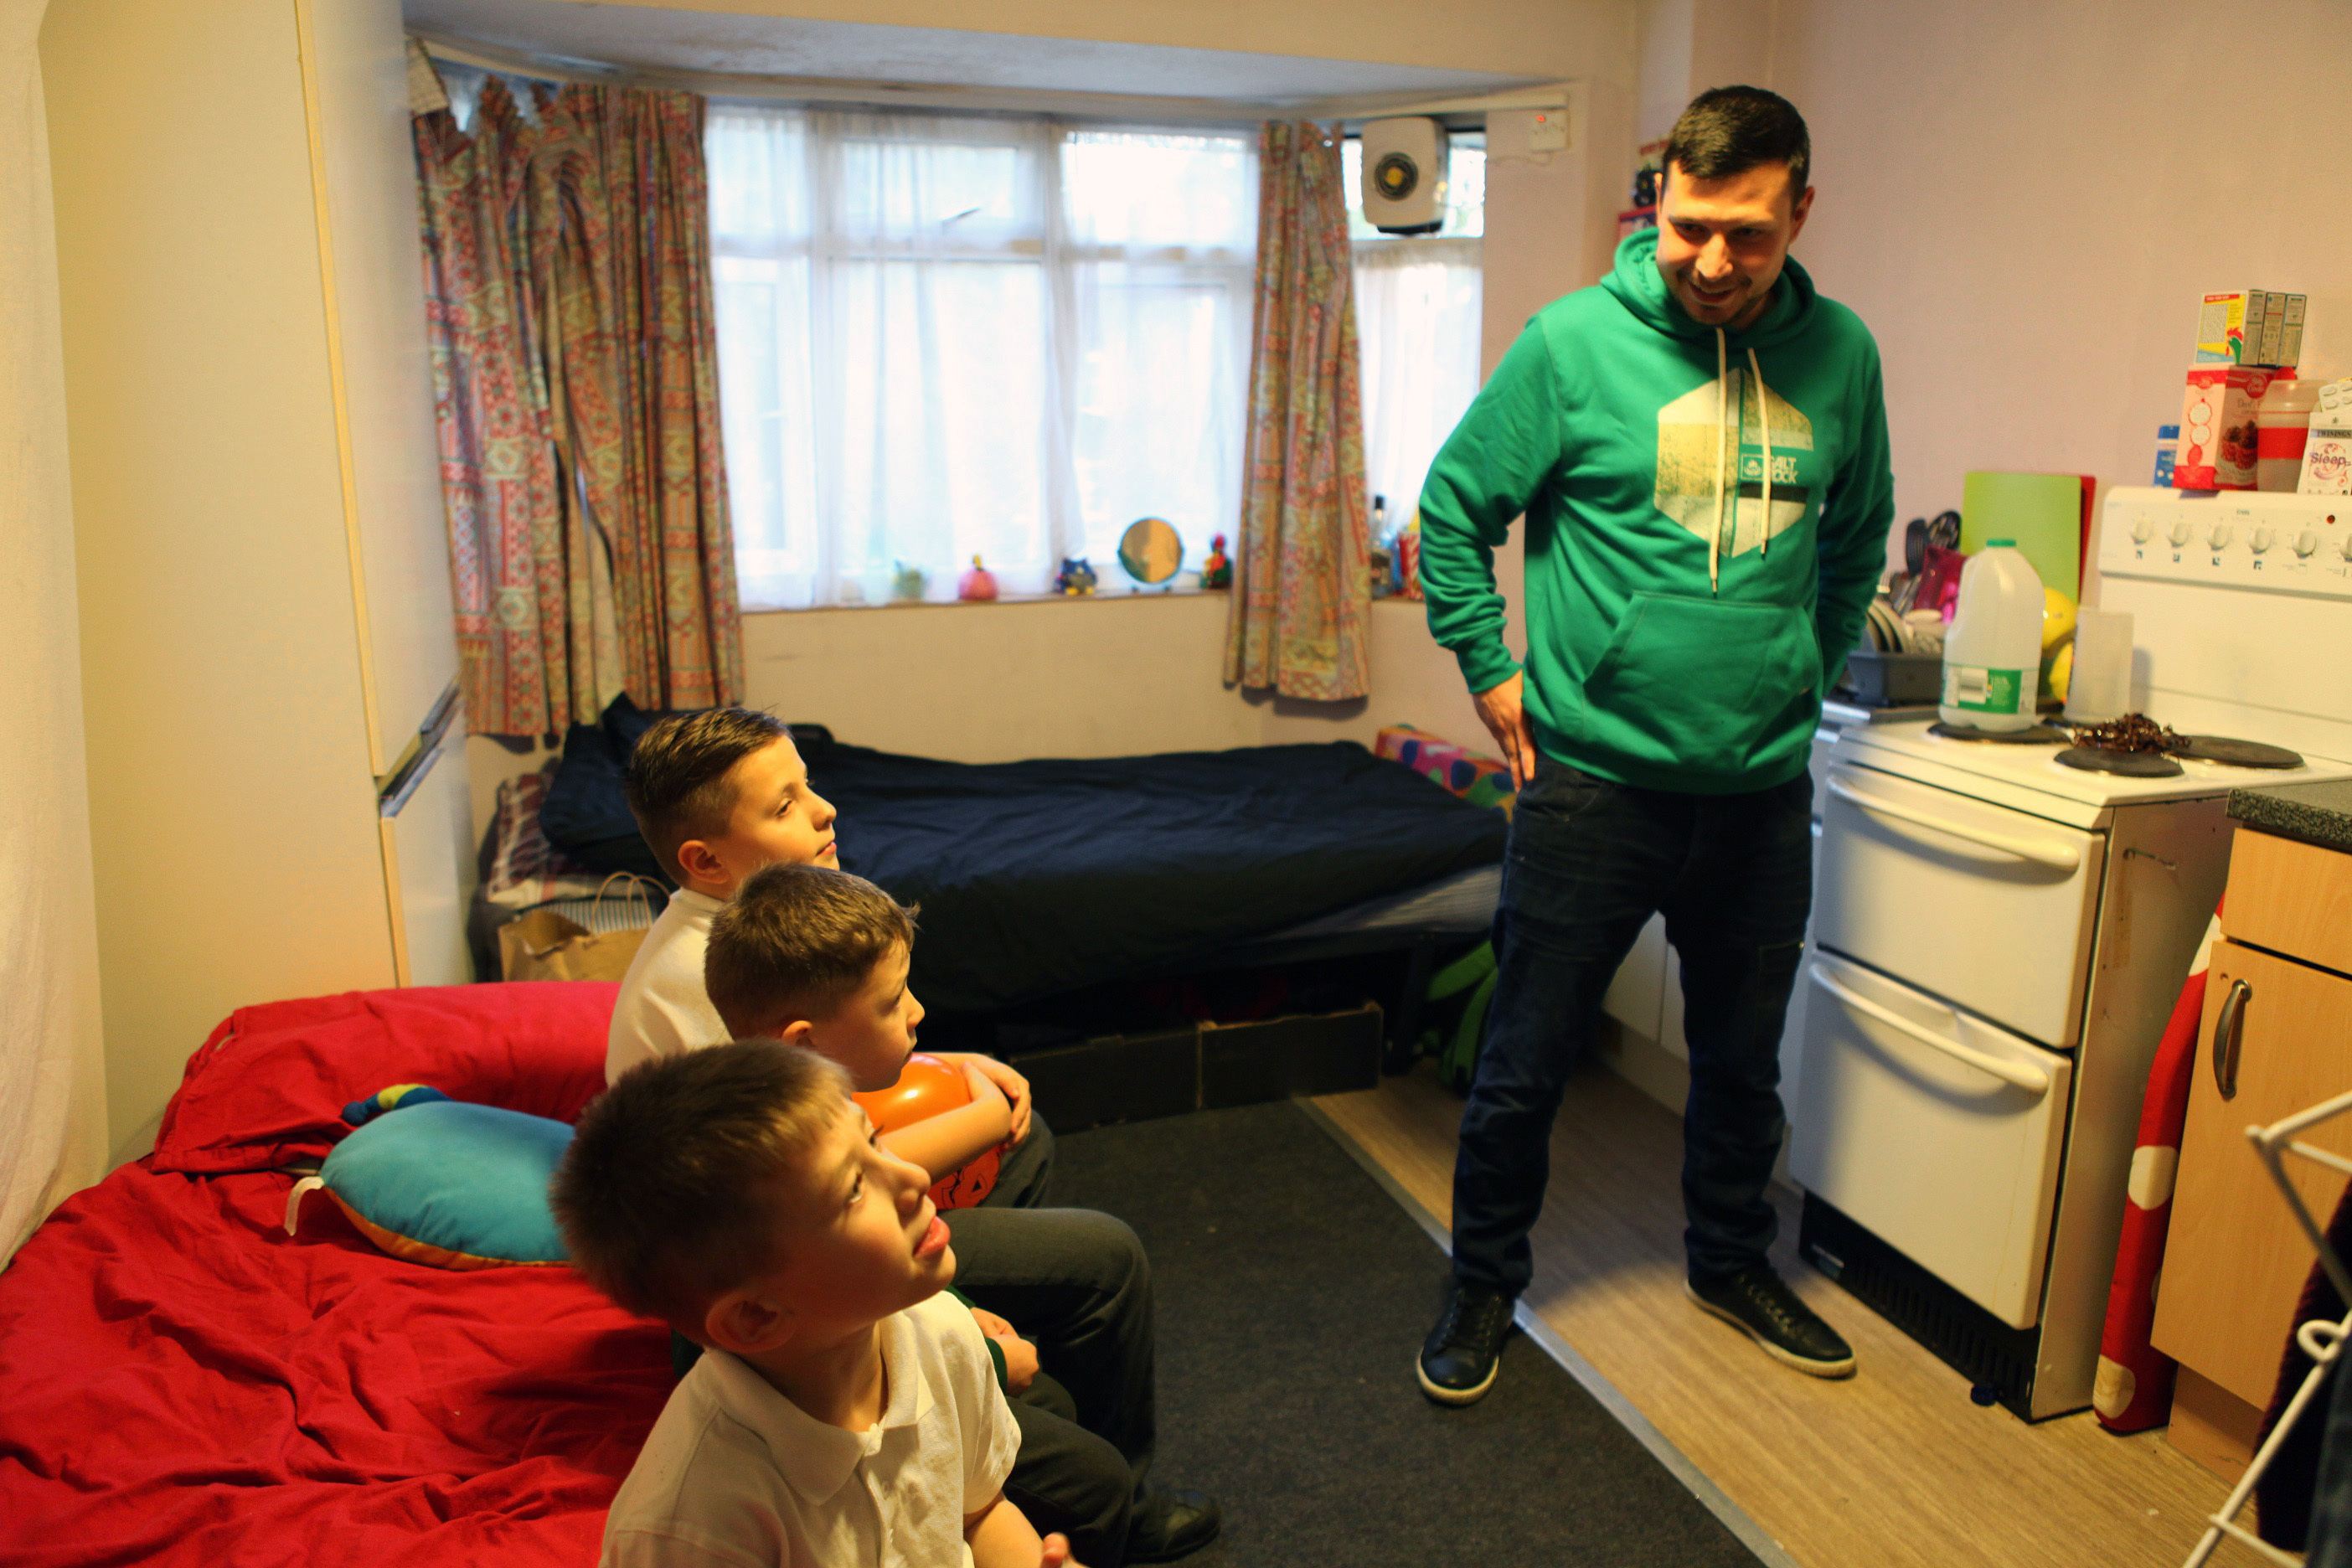 One man and his children who are living in an emergency hostel after becoming homeless.